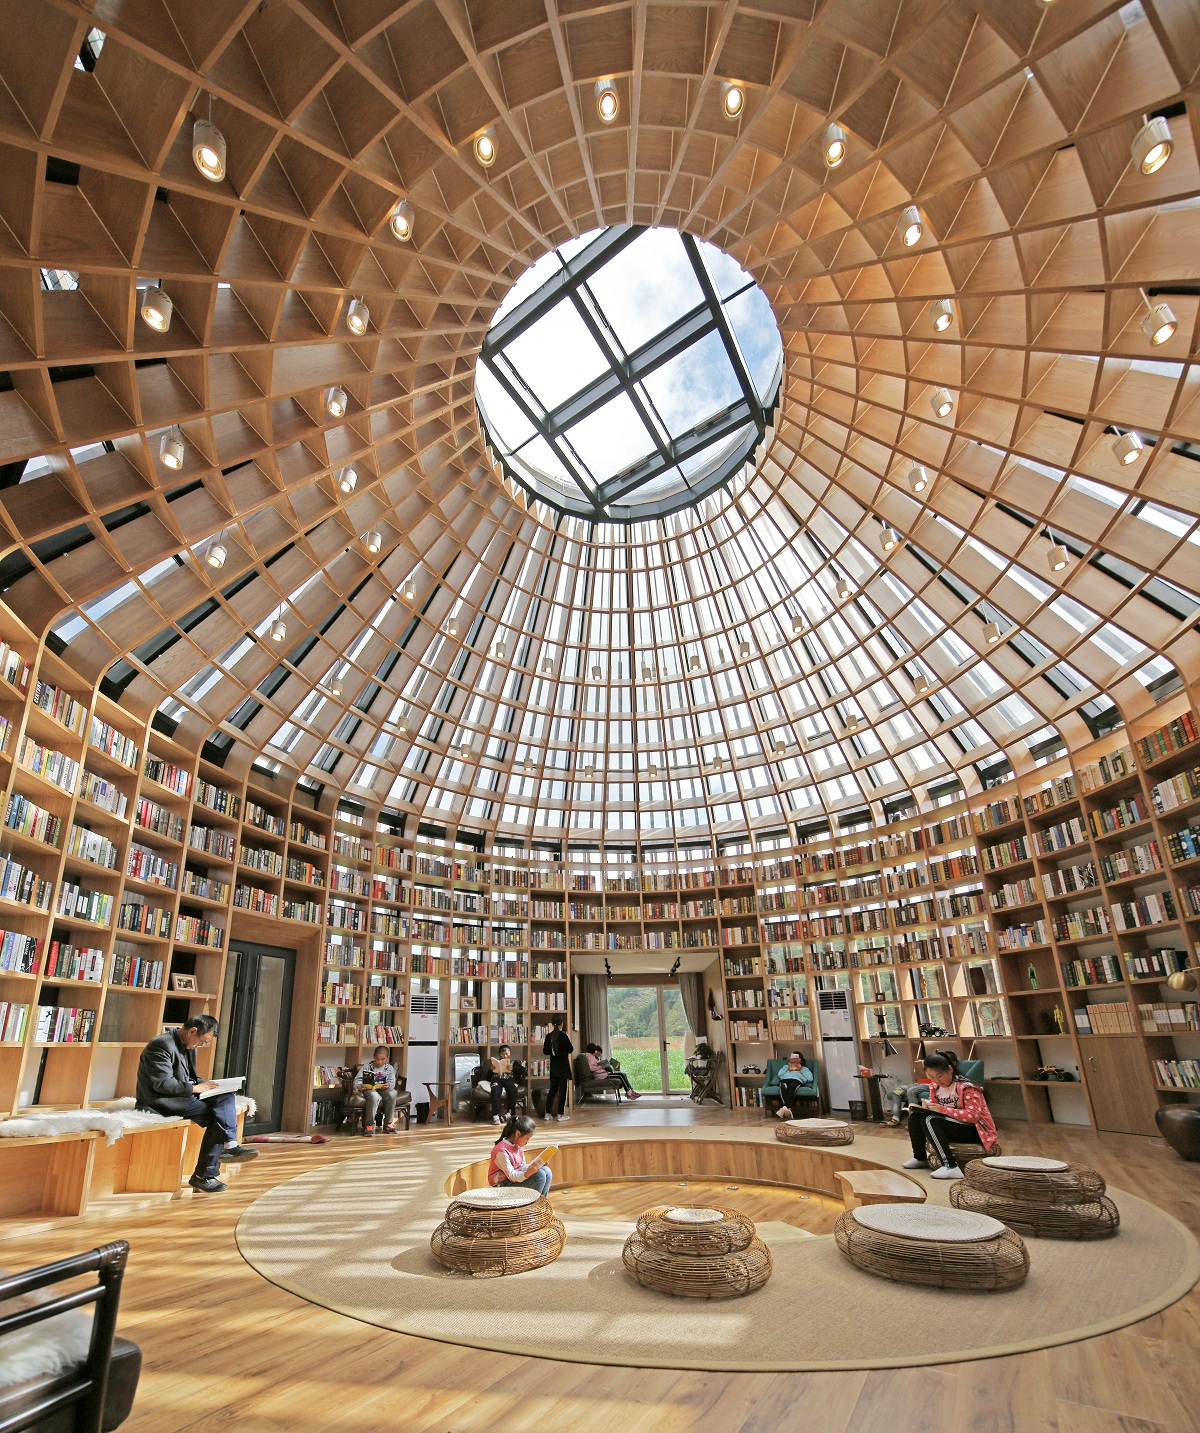 Hdd Designed A Mongolian Yurt Shaped Architecture In A Grassland In China